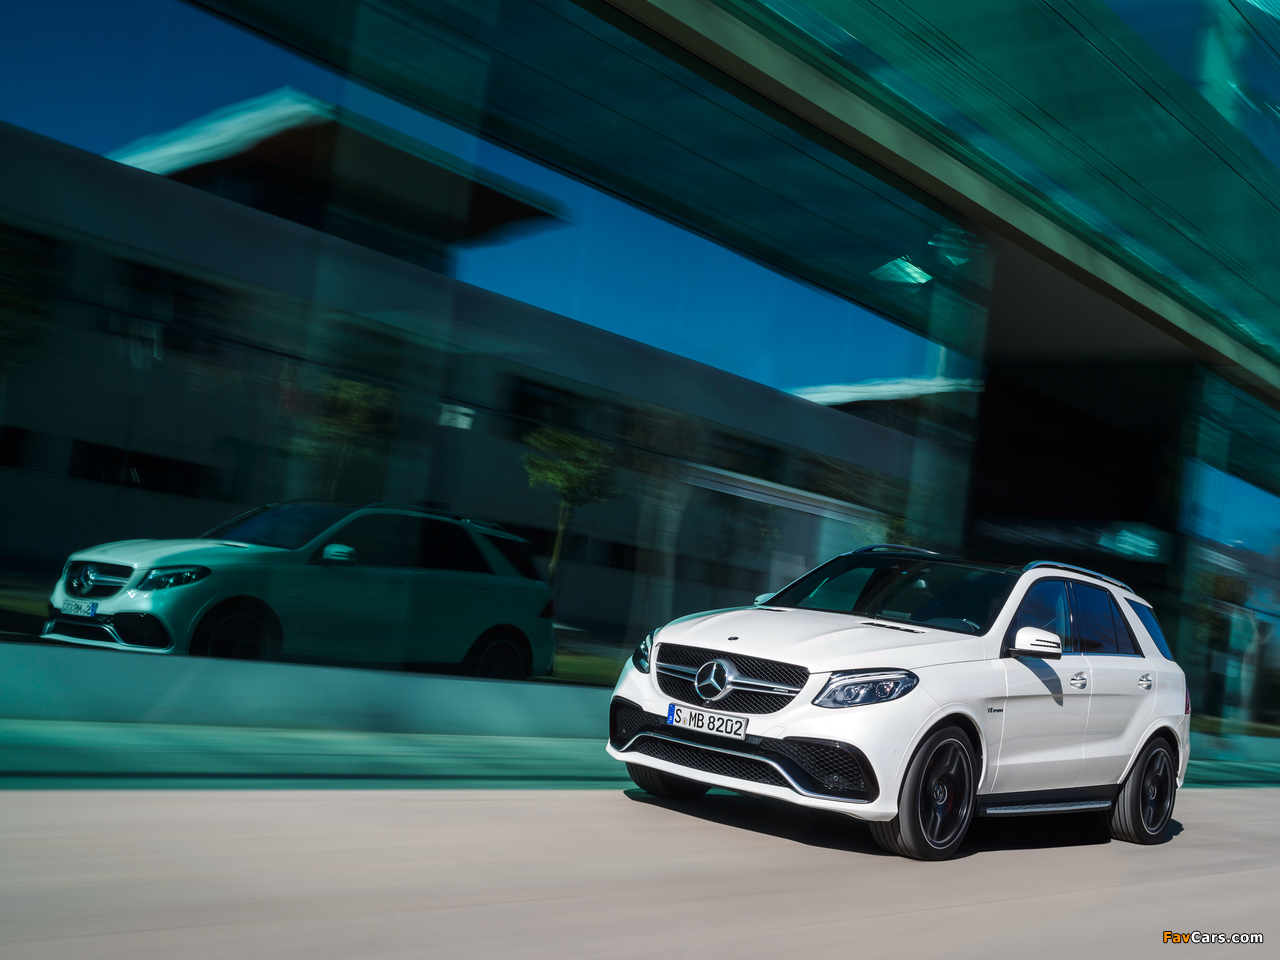 Mercedes-AMG GLE 63 S 4MATIC (W166) 2015 images (1280 x 960)